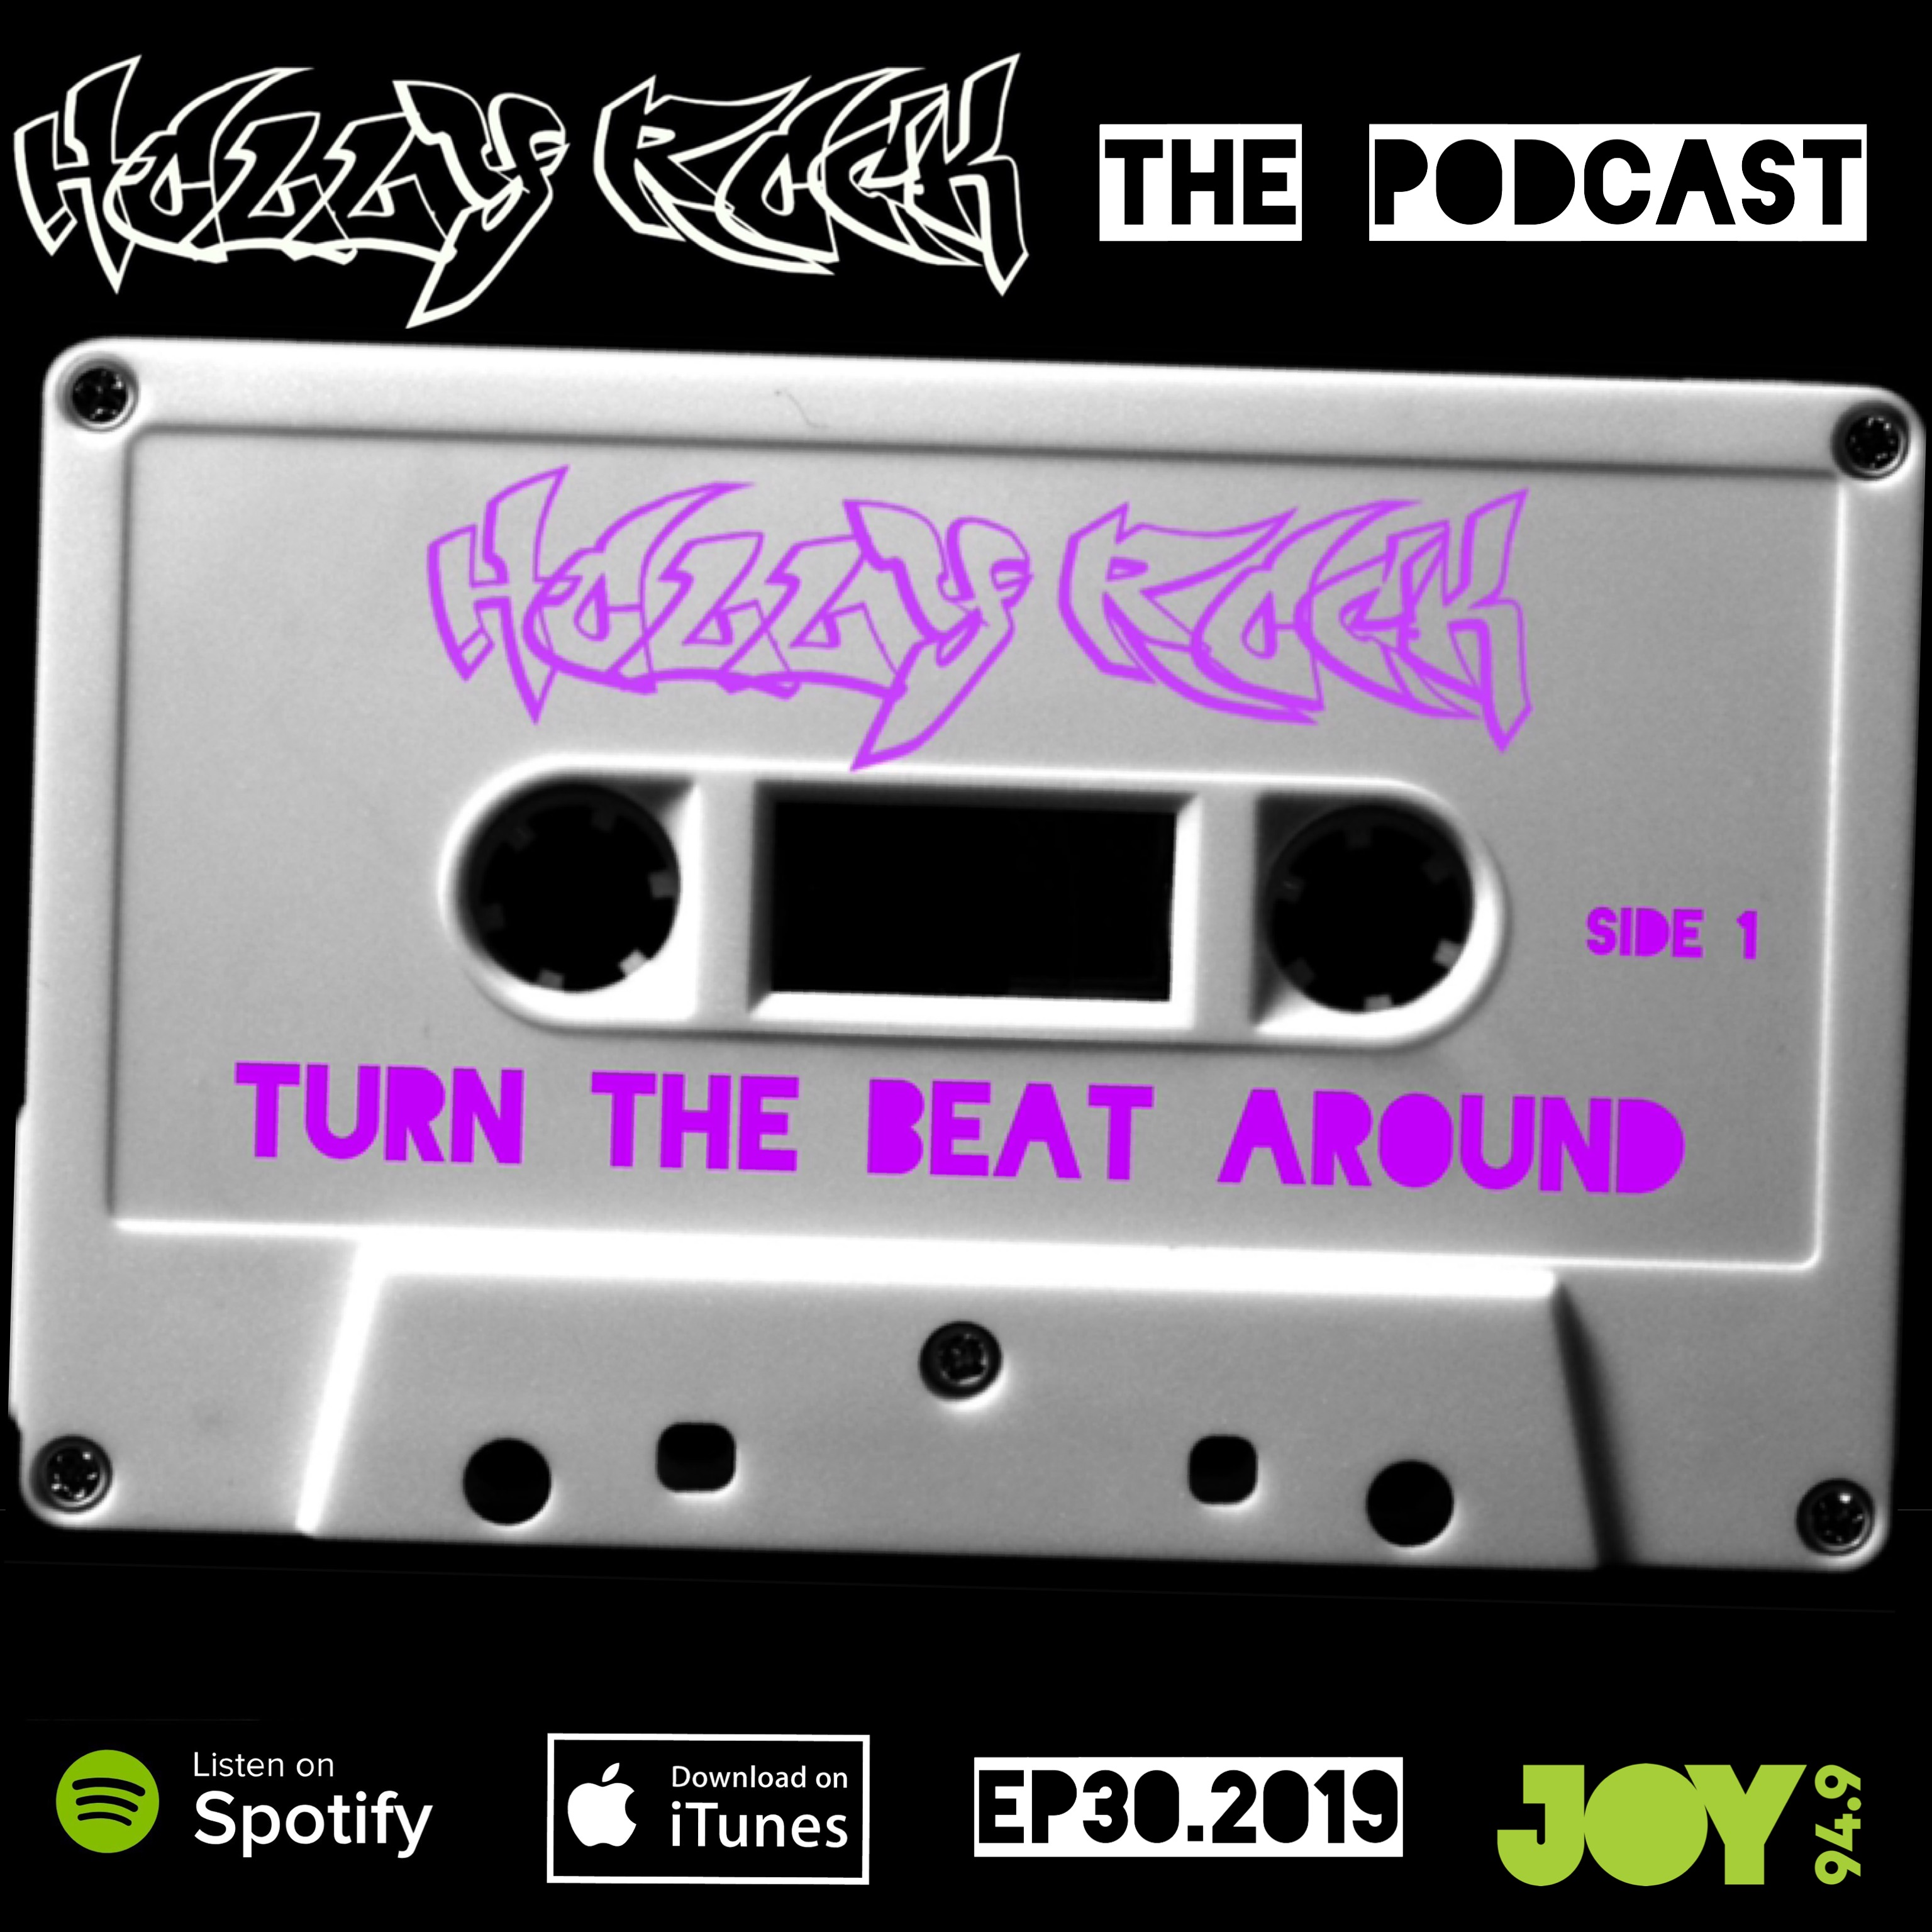 Holly Rock - The Podcast | Turn the Beat Around